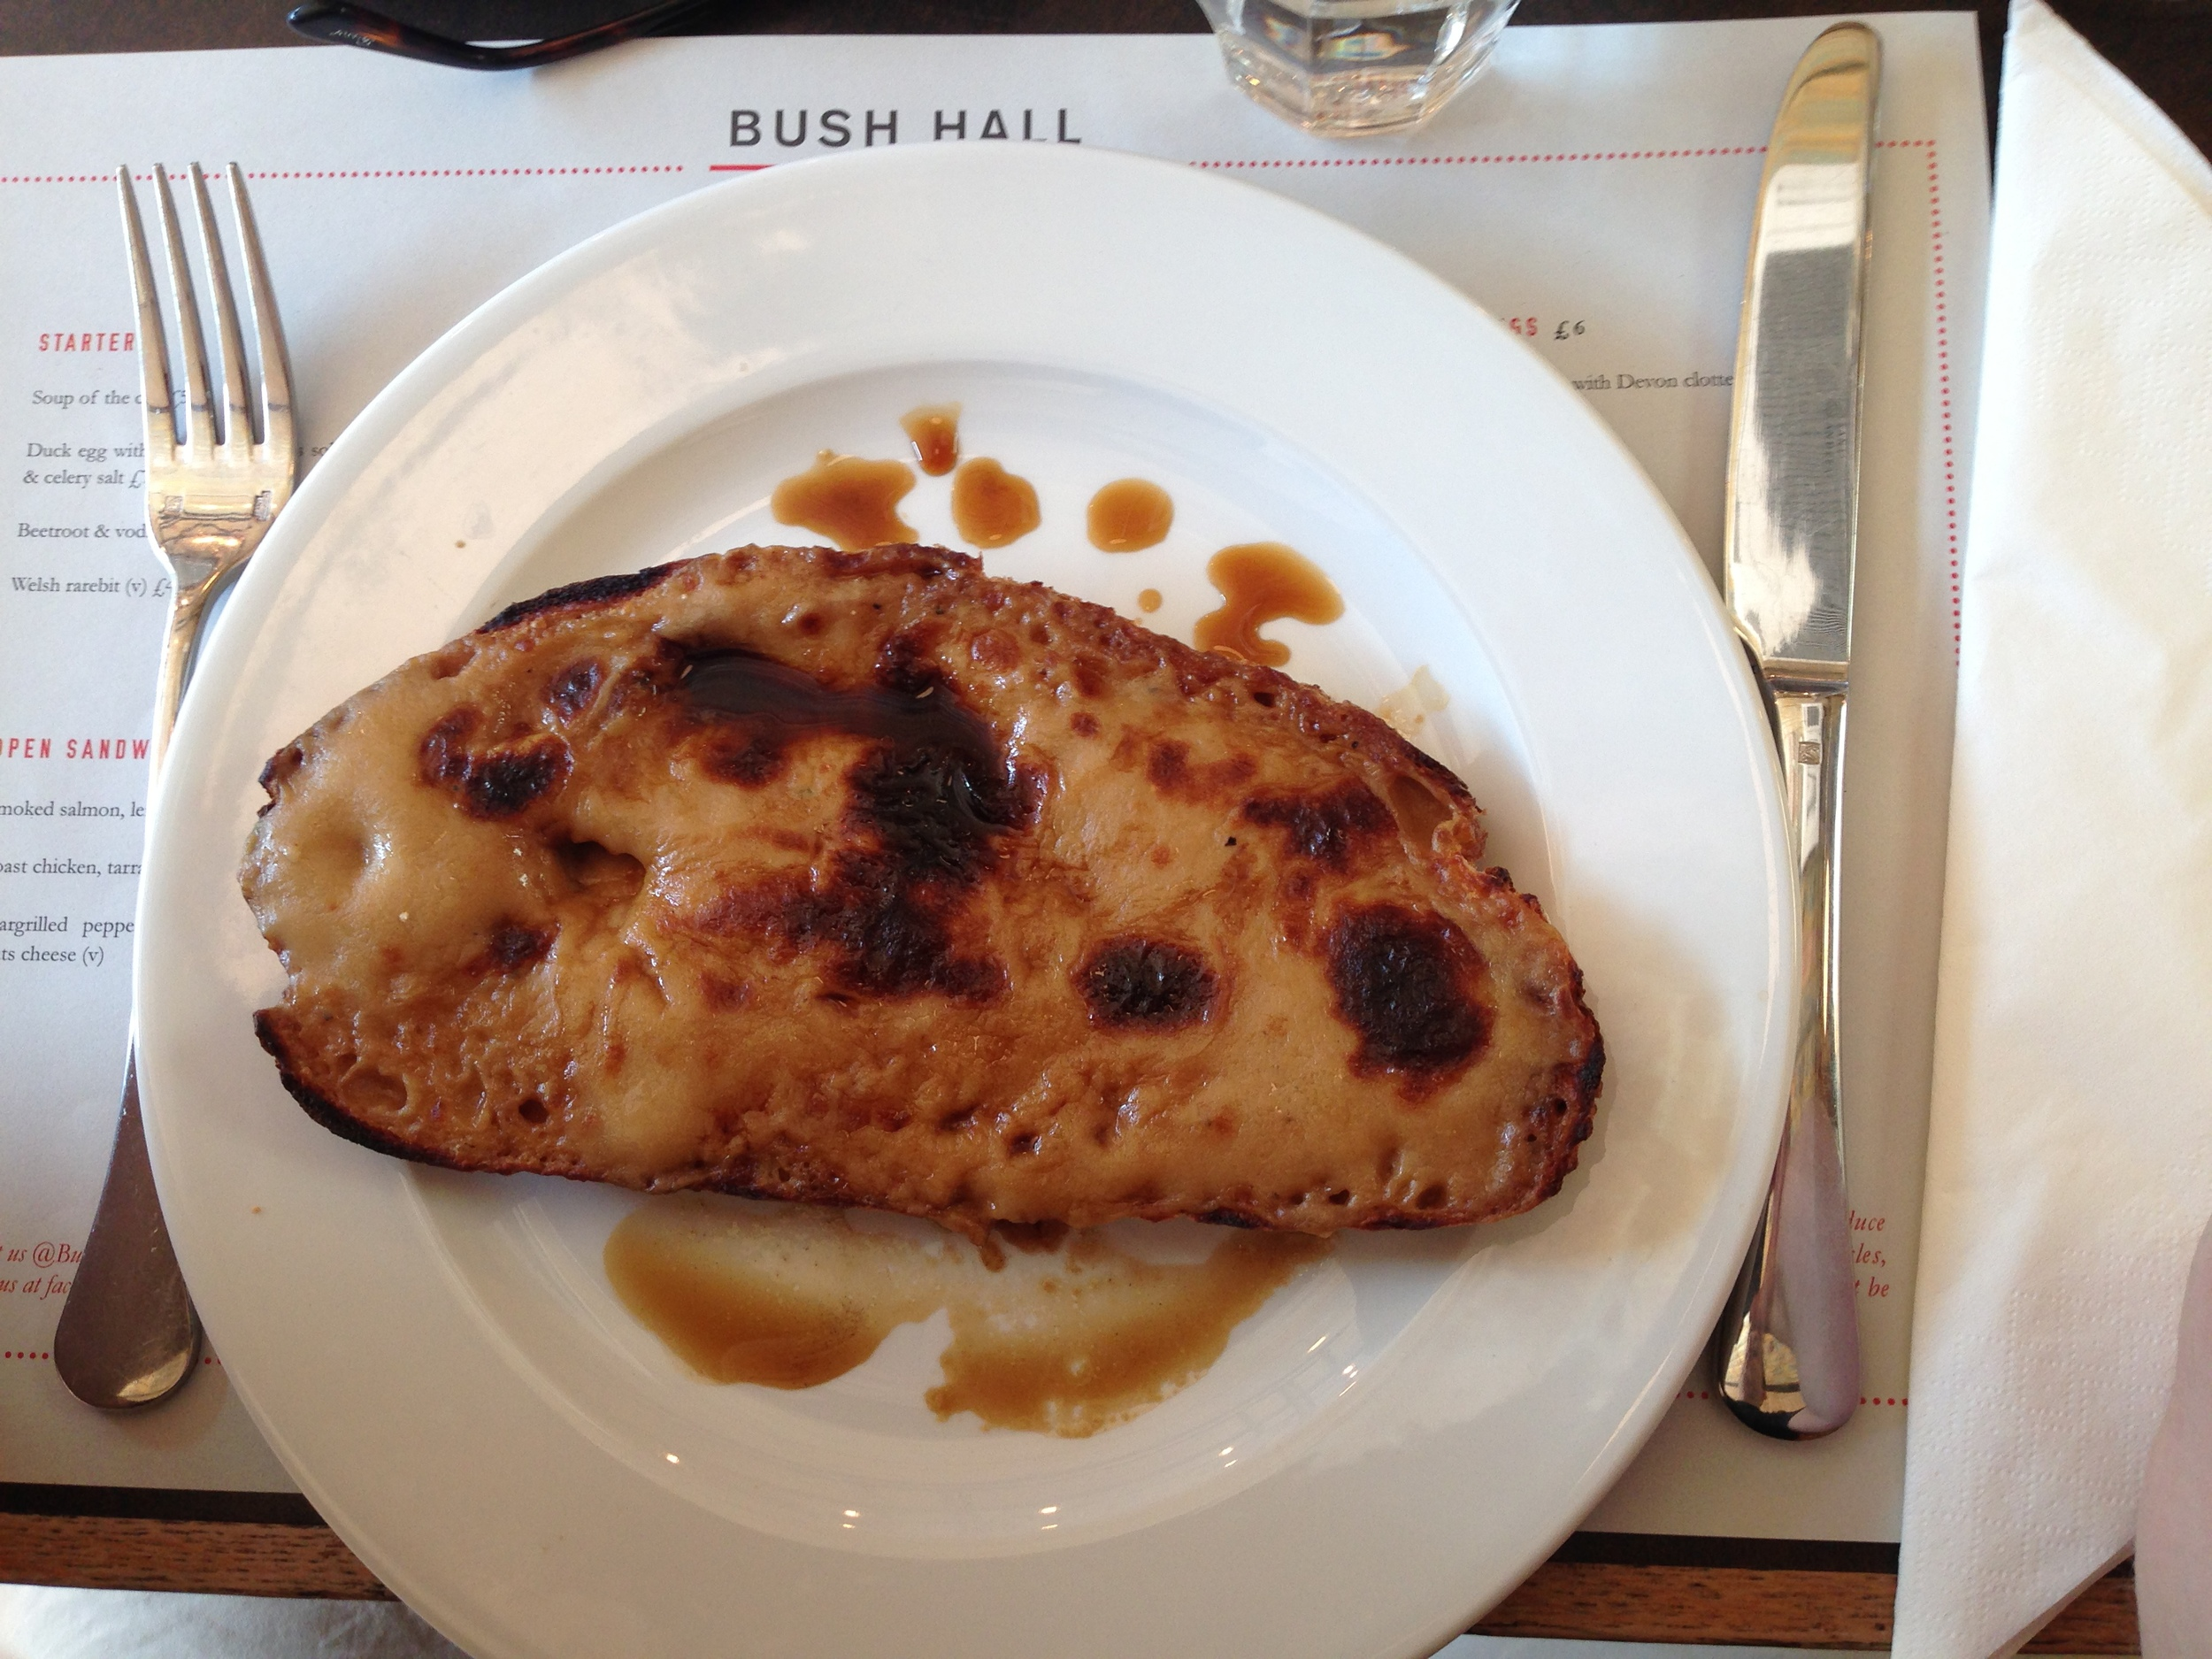 Bush Hall Rarebit (£4)